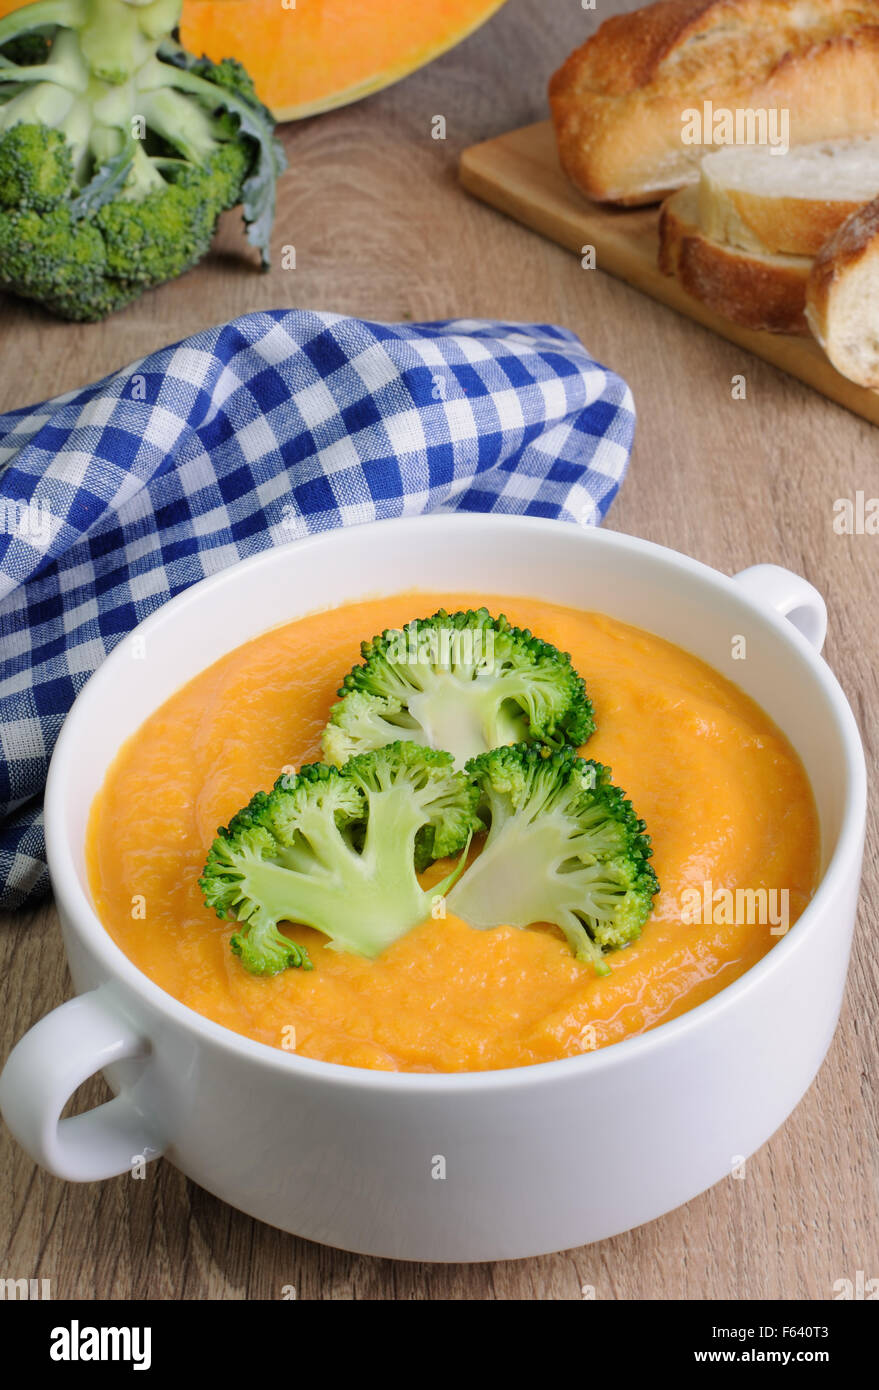 Pumpkin soup puree with cream in a dish with broccoli - Stock Image